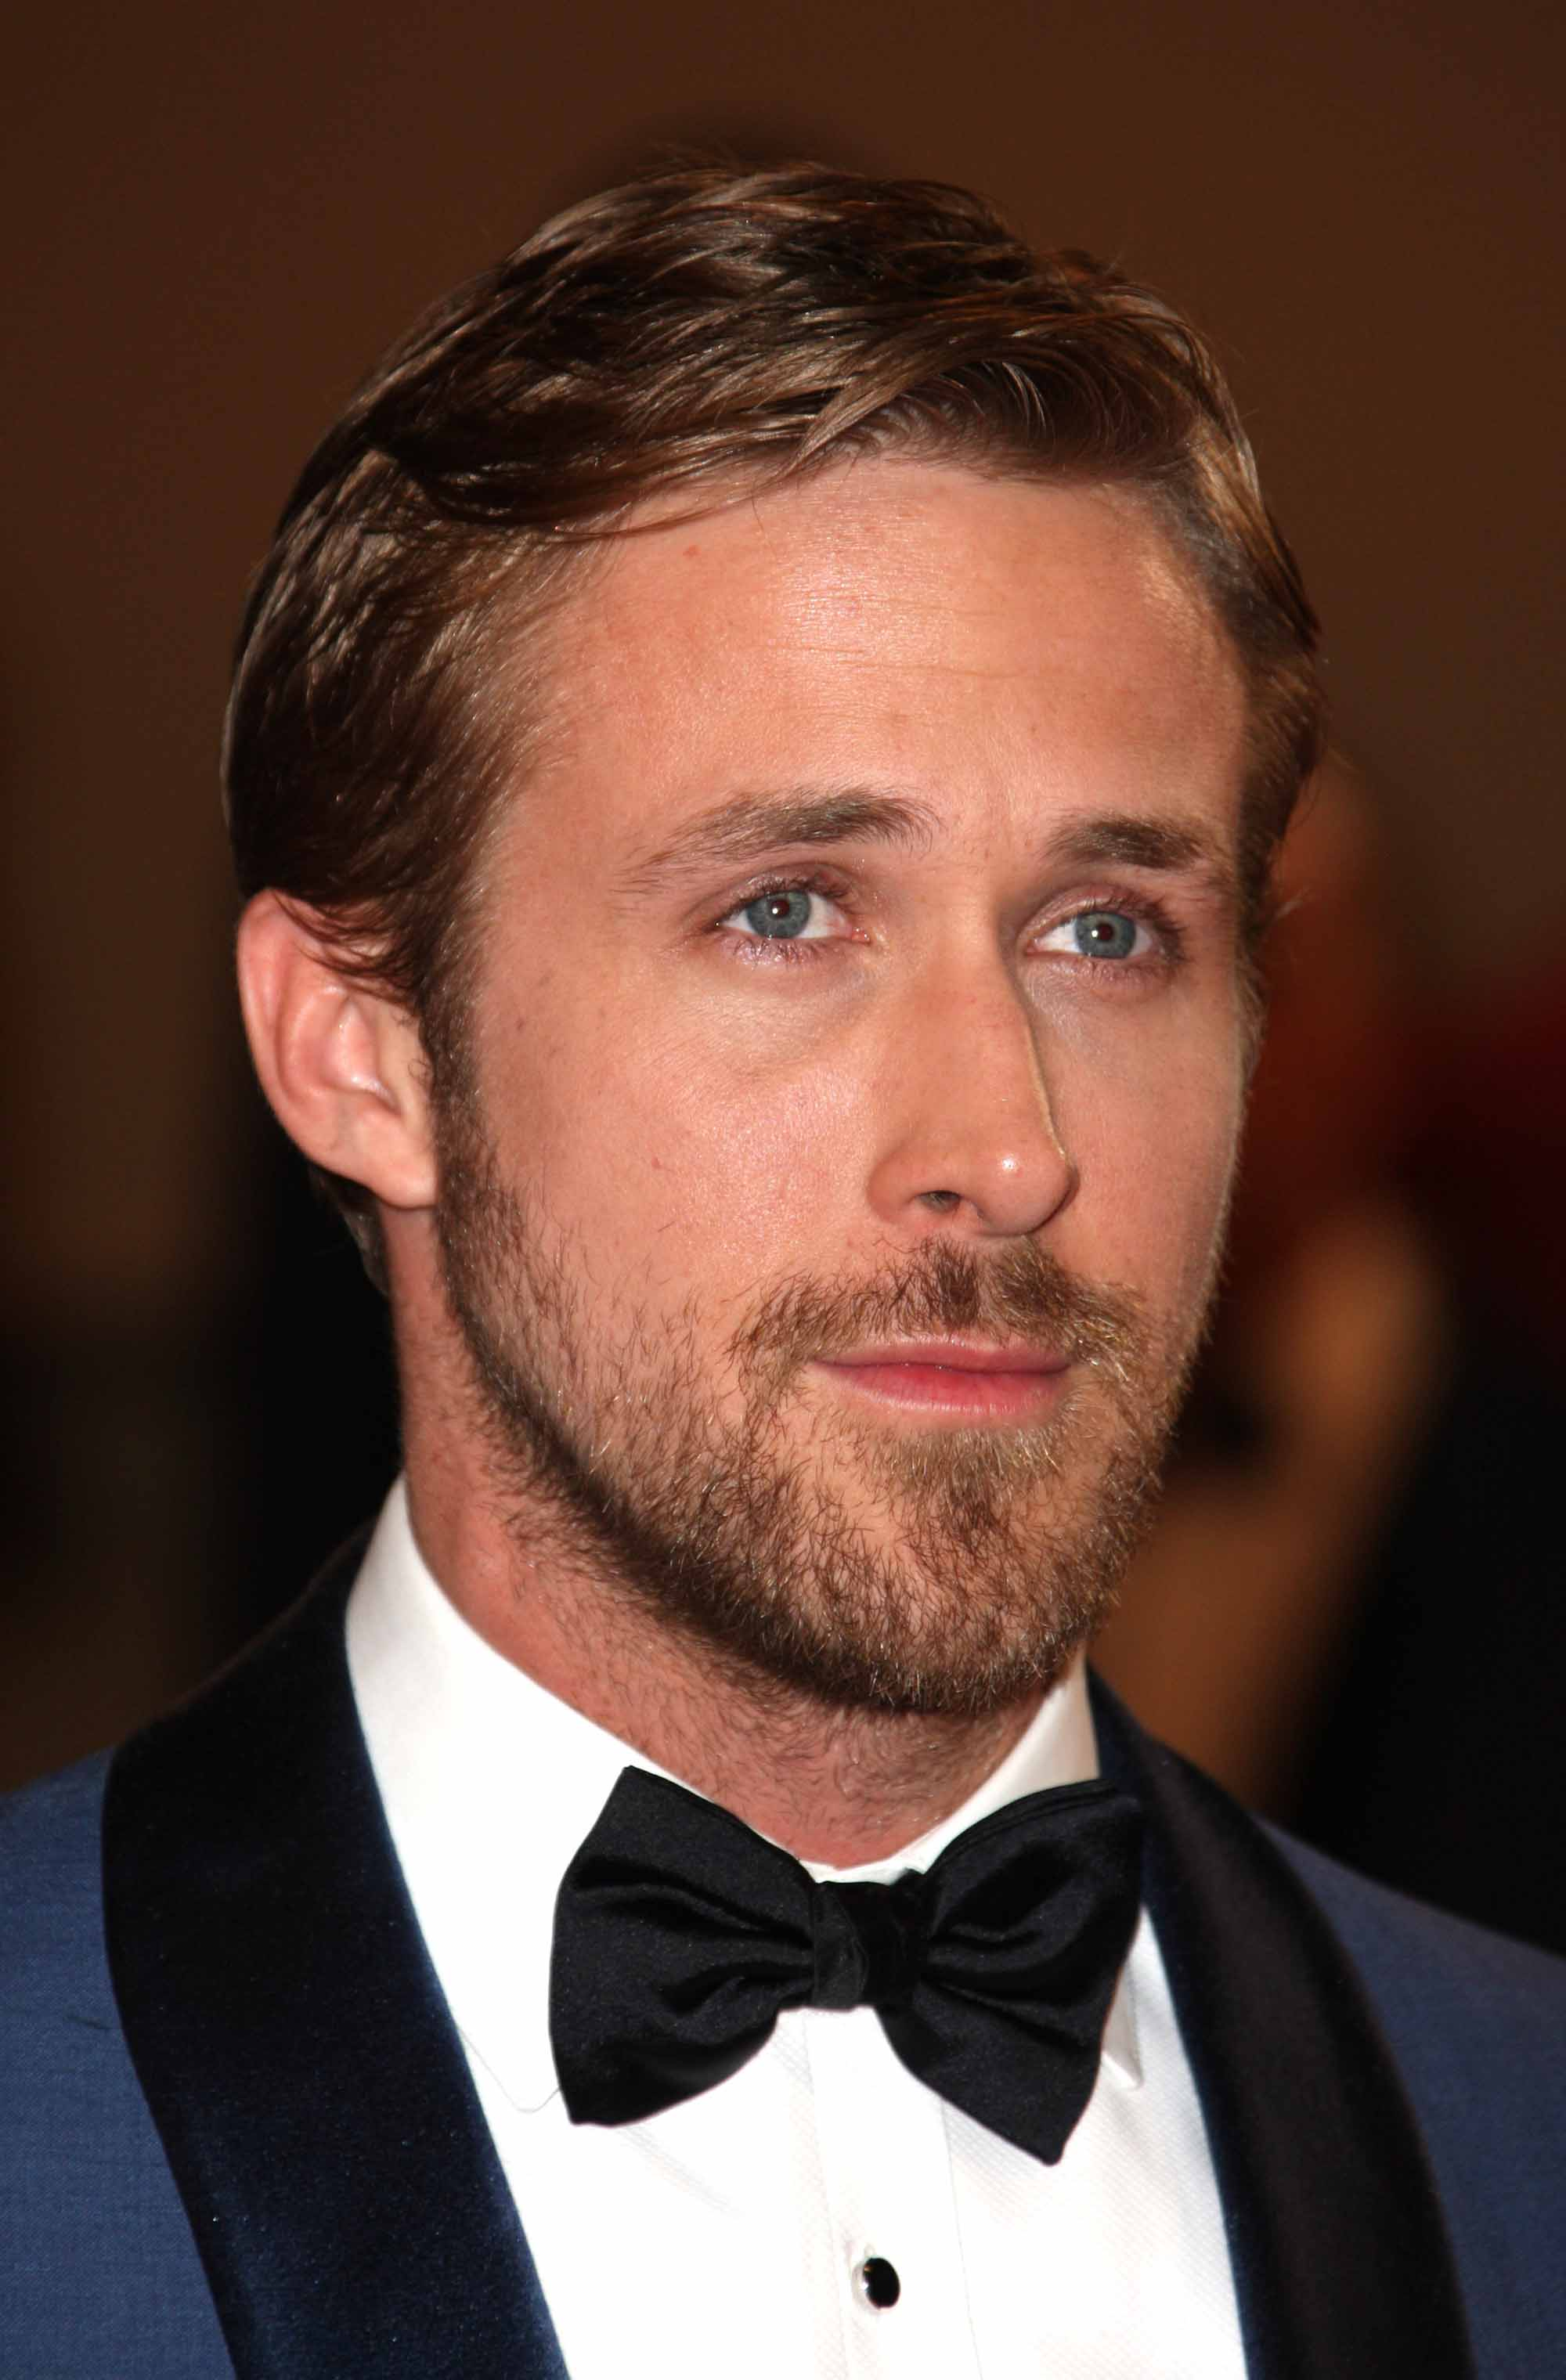 Ryan Gosling - The Canadian Encyclopedia Ryan Gosling